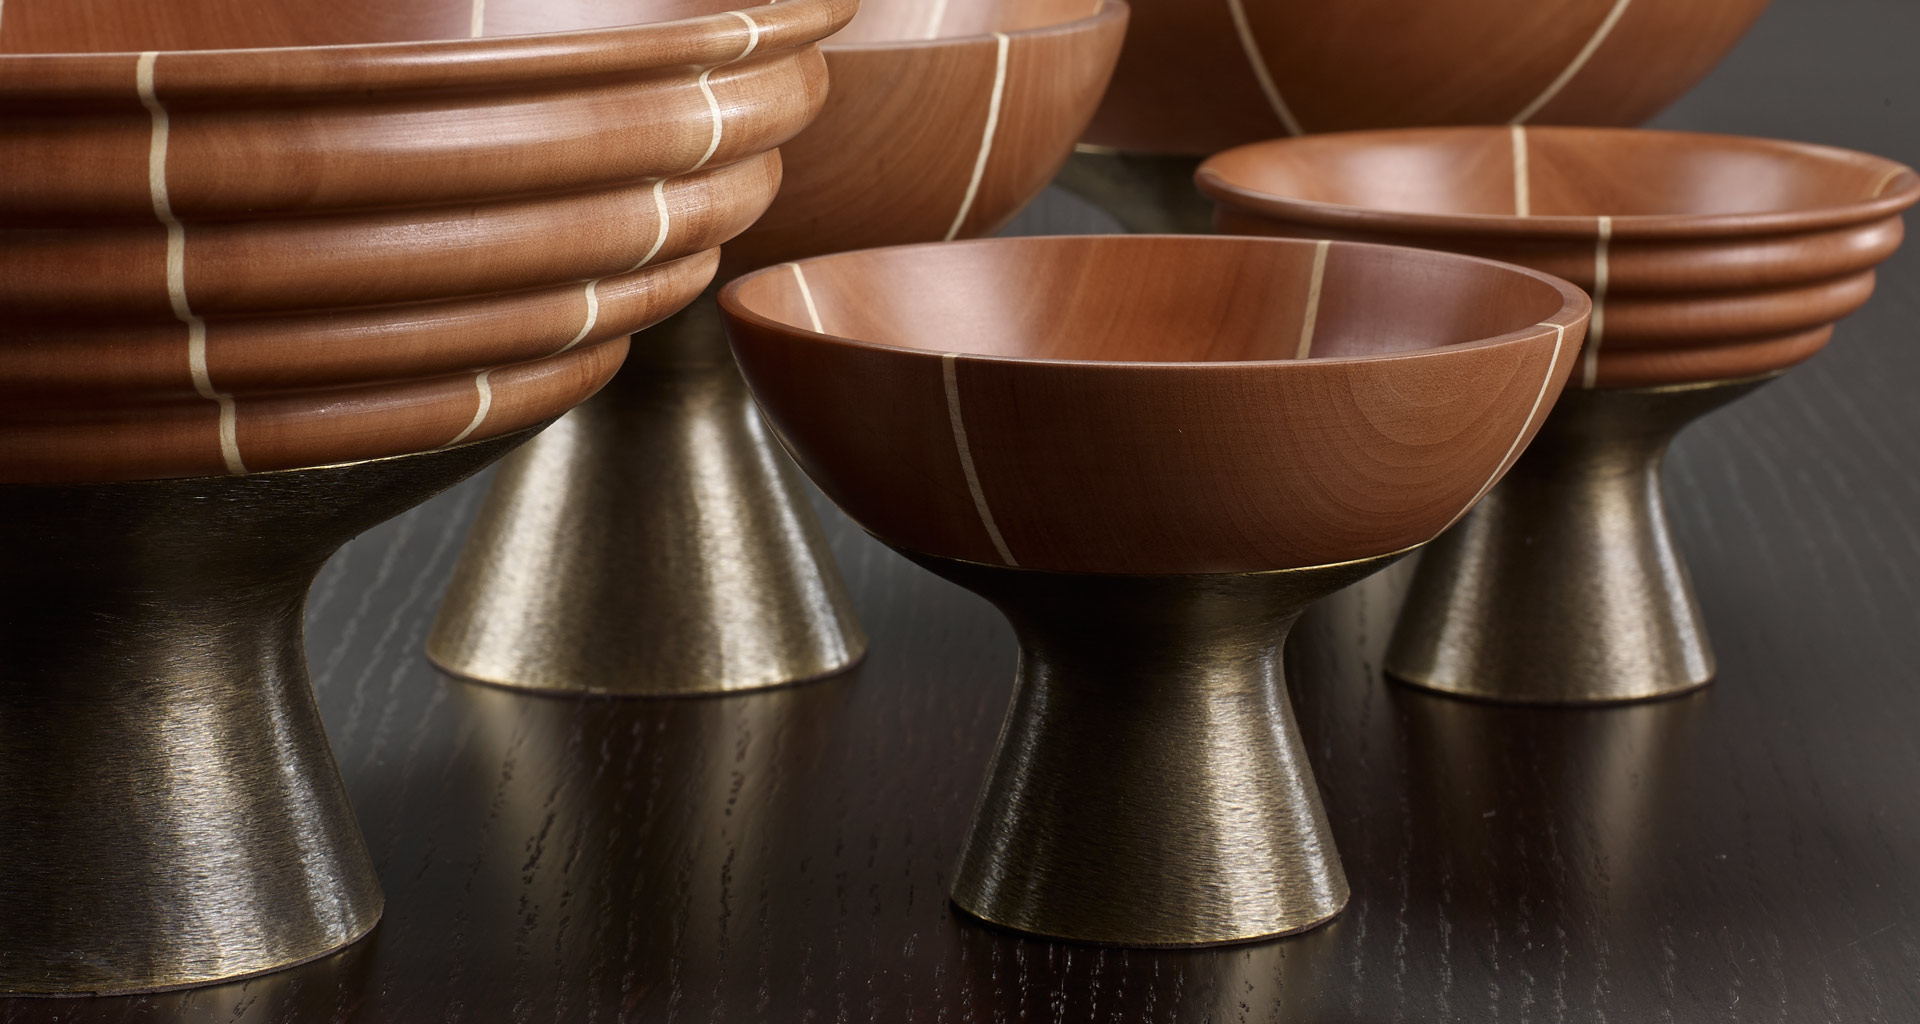 Coppetta is a bronze and wooden vase from Promemoria's catalogue | Promemoria